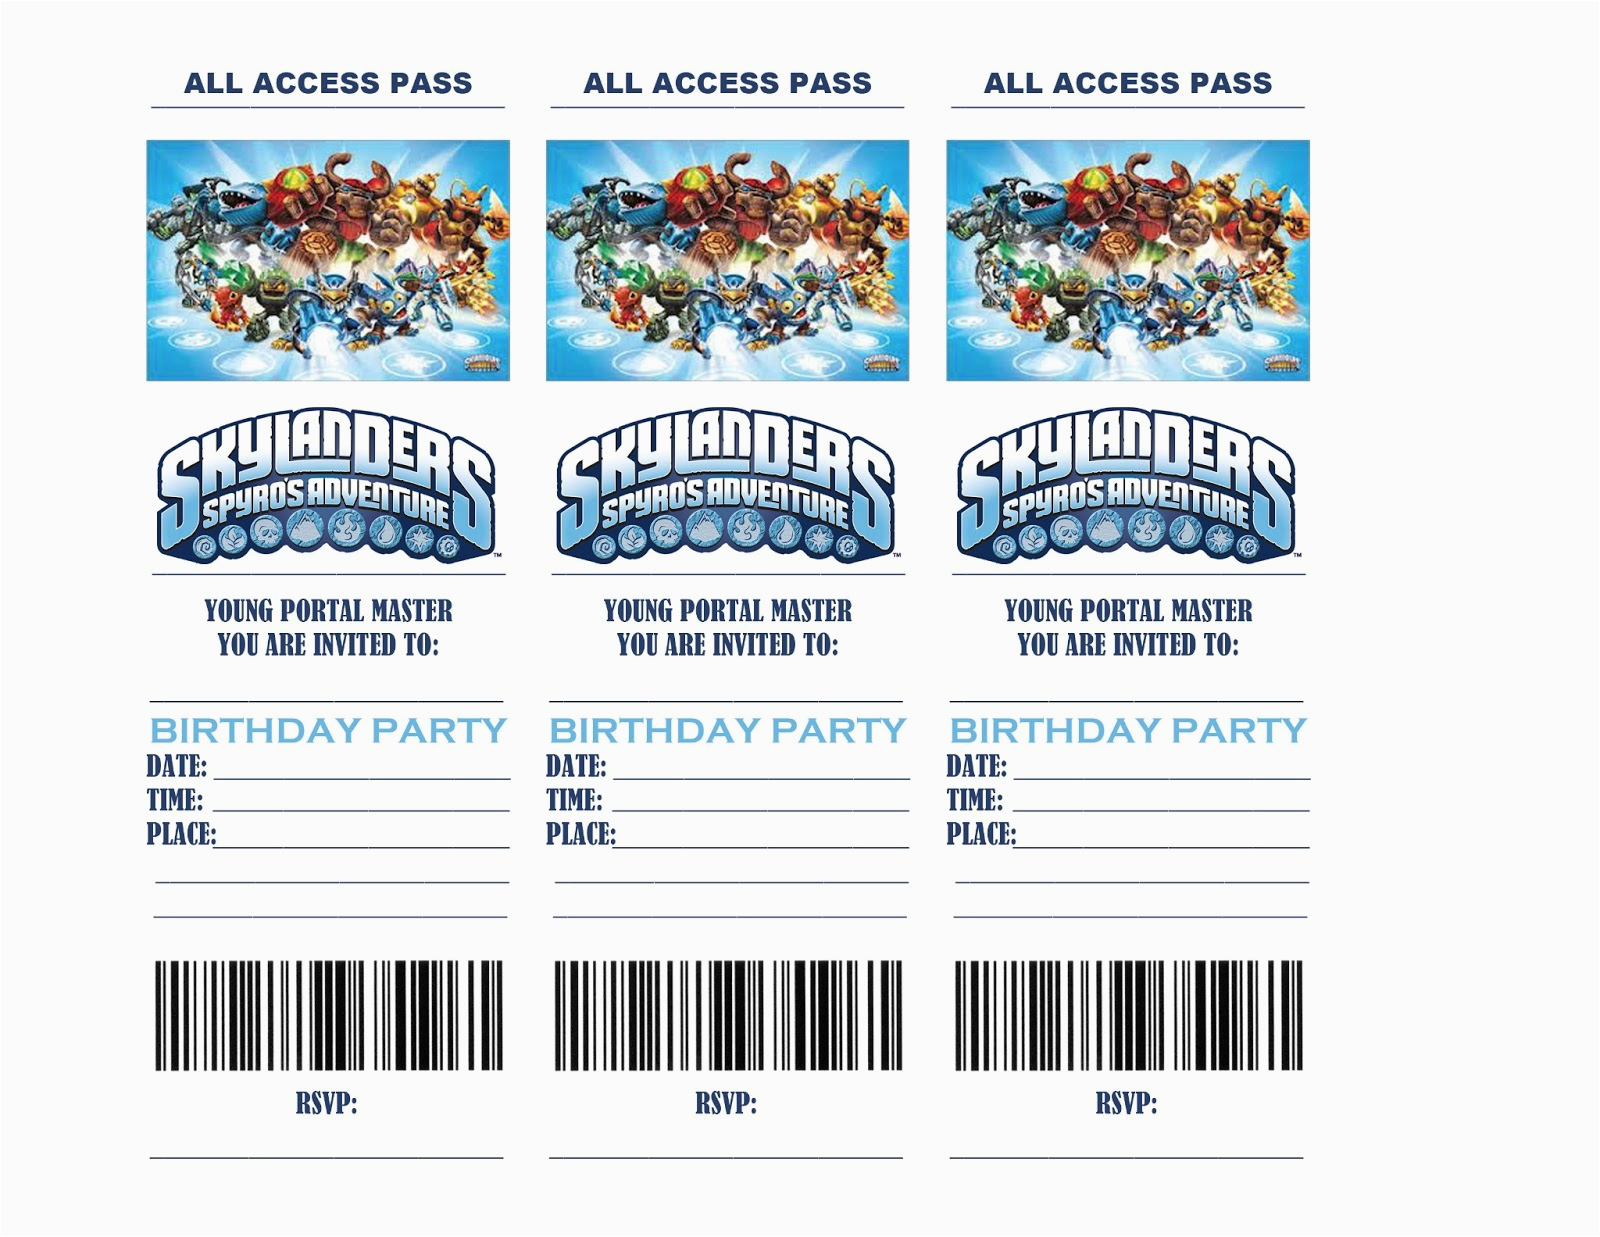 Free Printable Skylanders Birthday Invitations | Birthdaybuzz - Free Printable Skylander Invitations